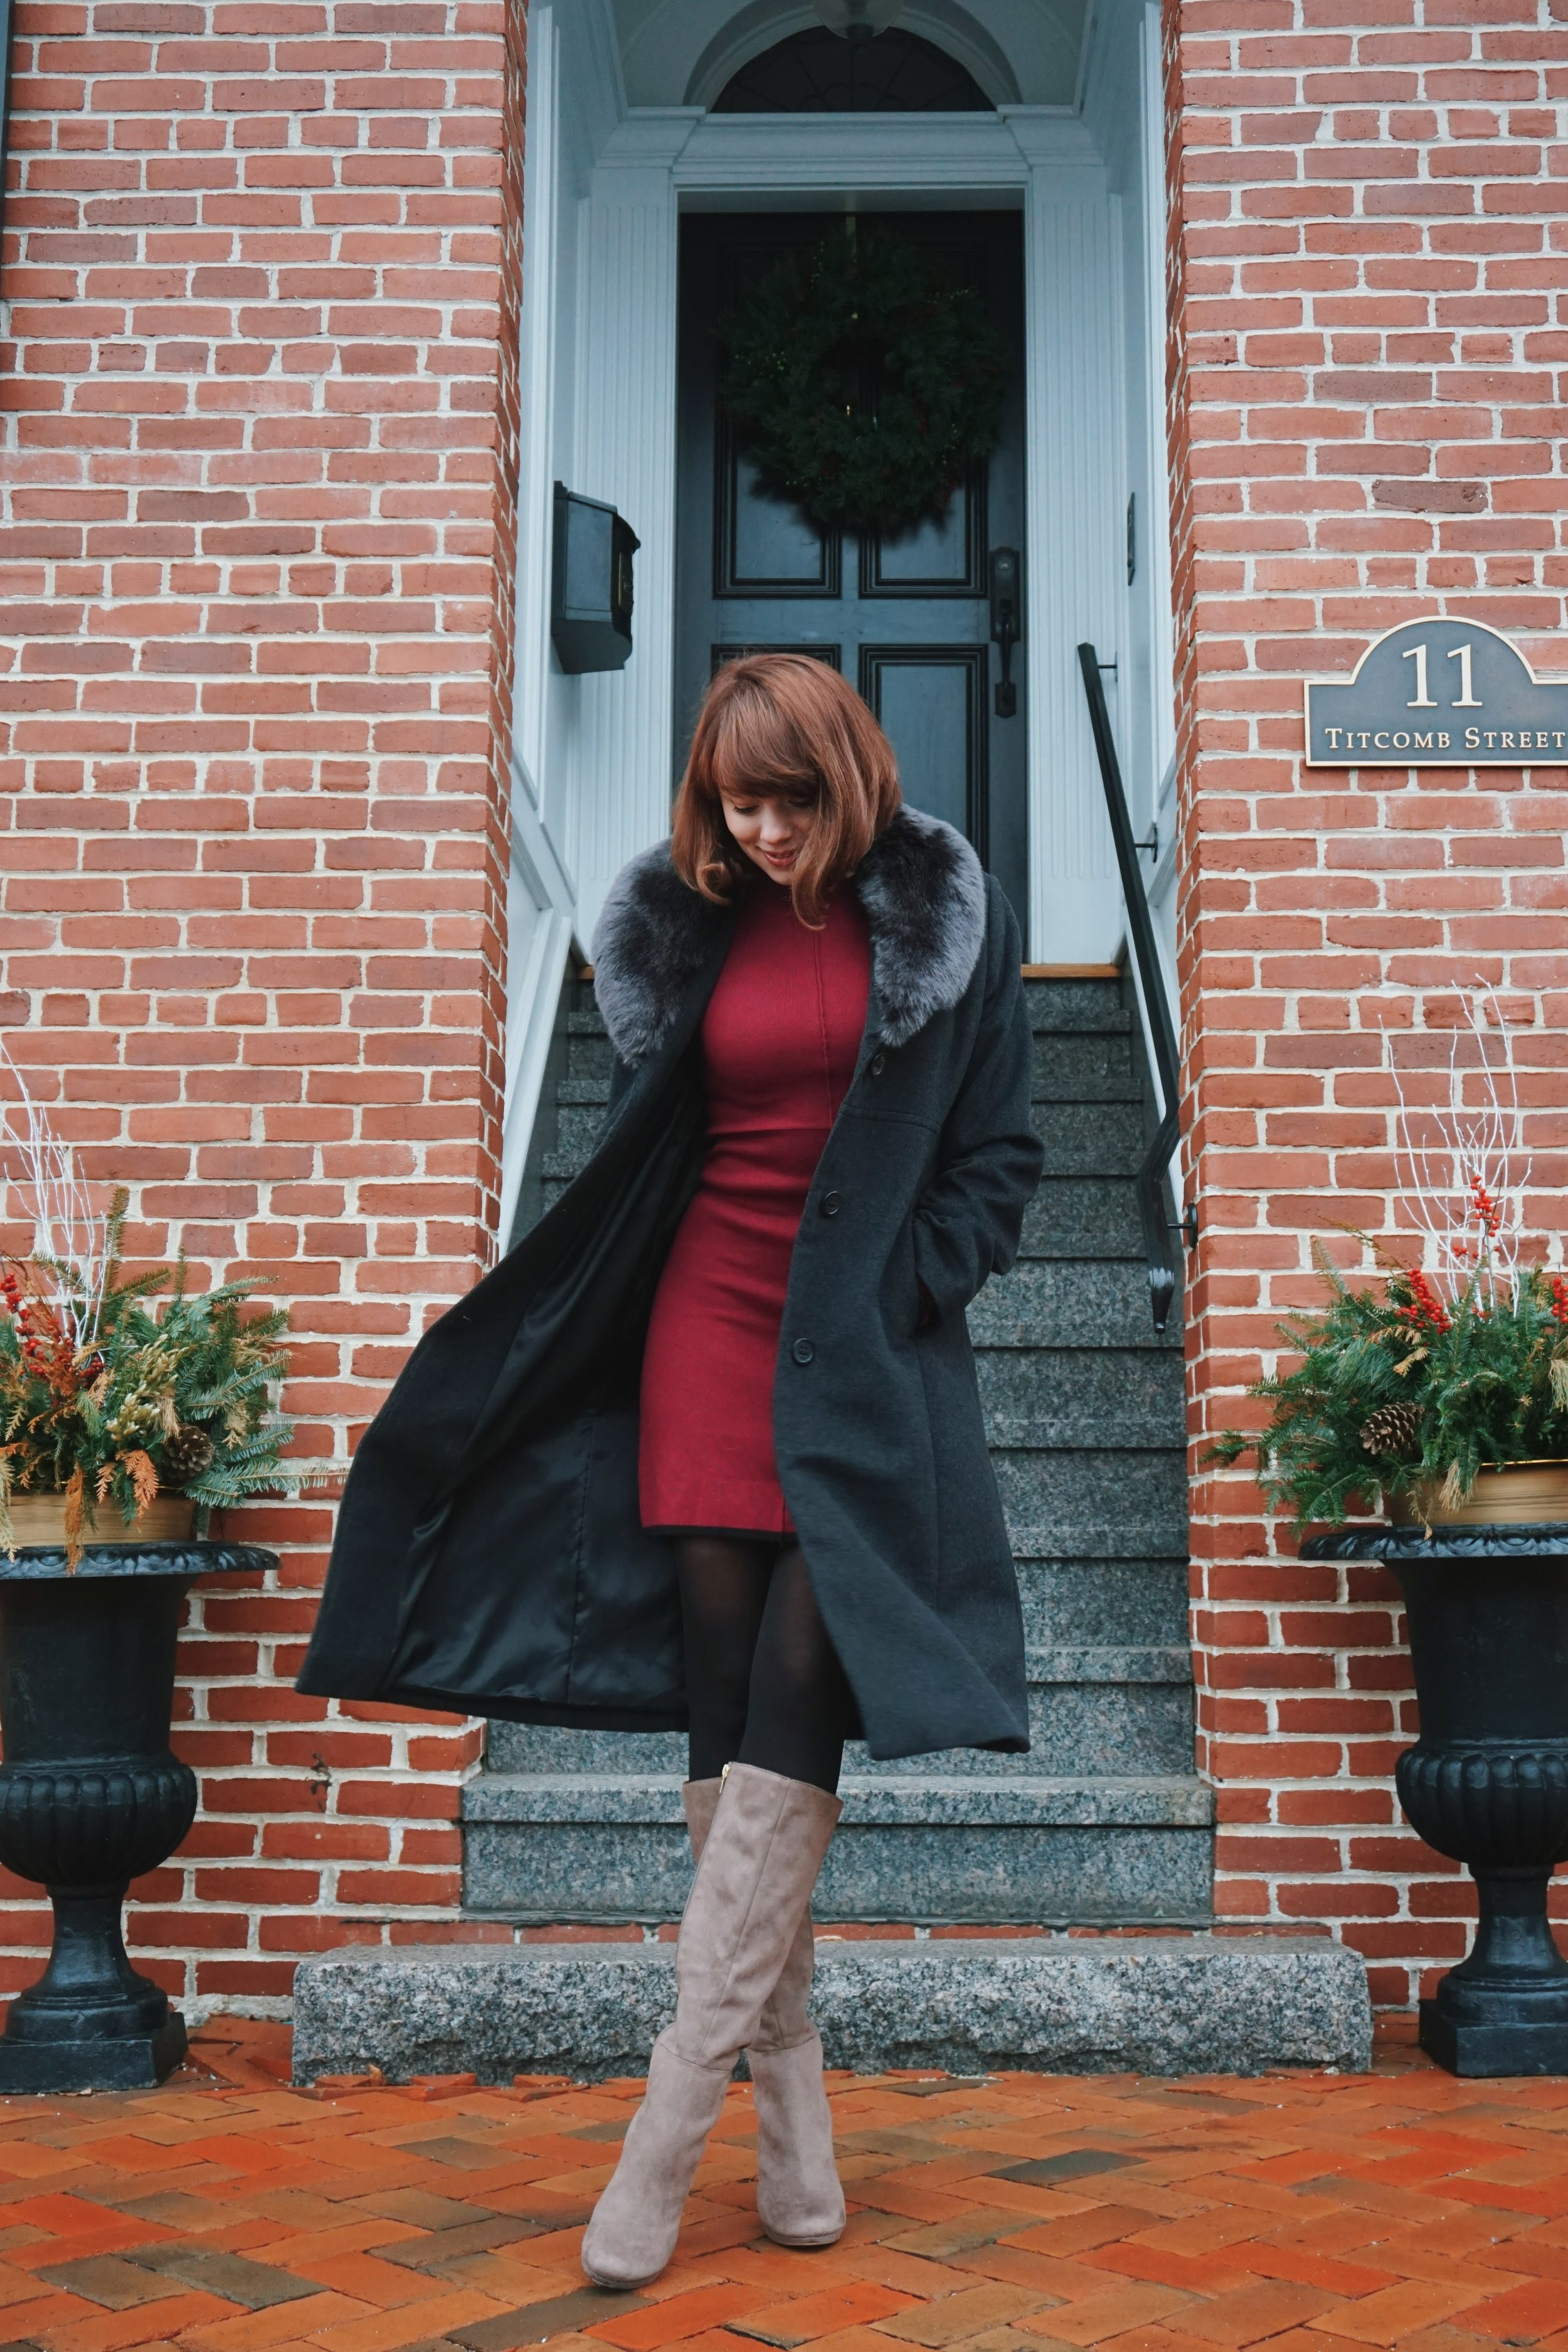 A girl posing next to a brick building, wearing an elegant winter outfit.